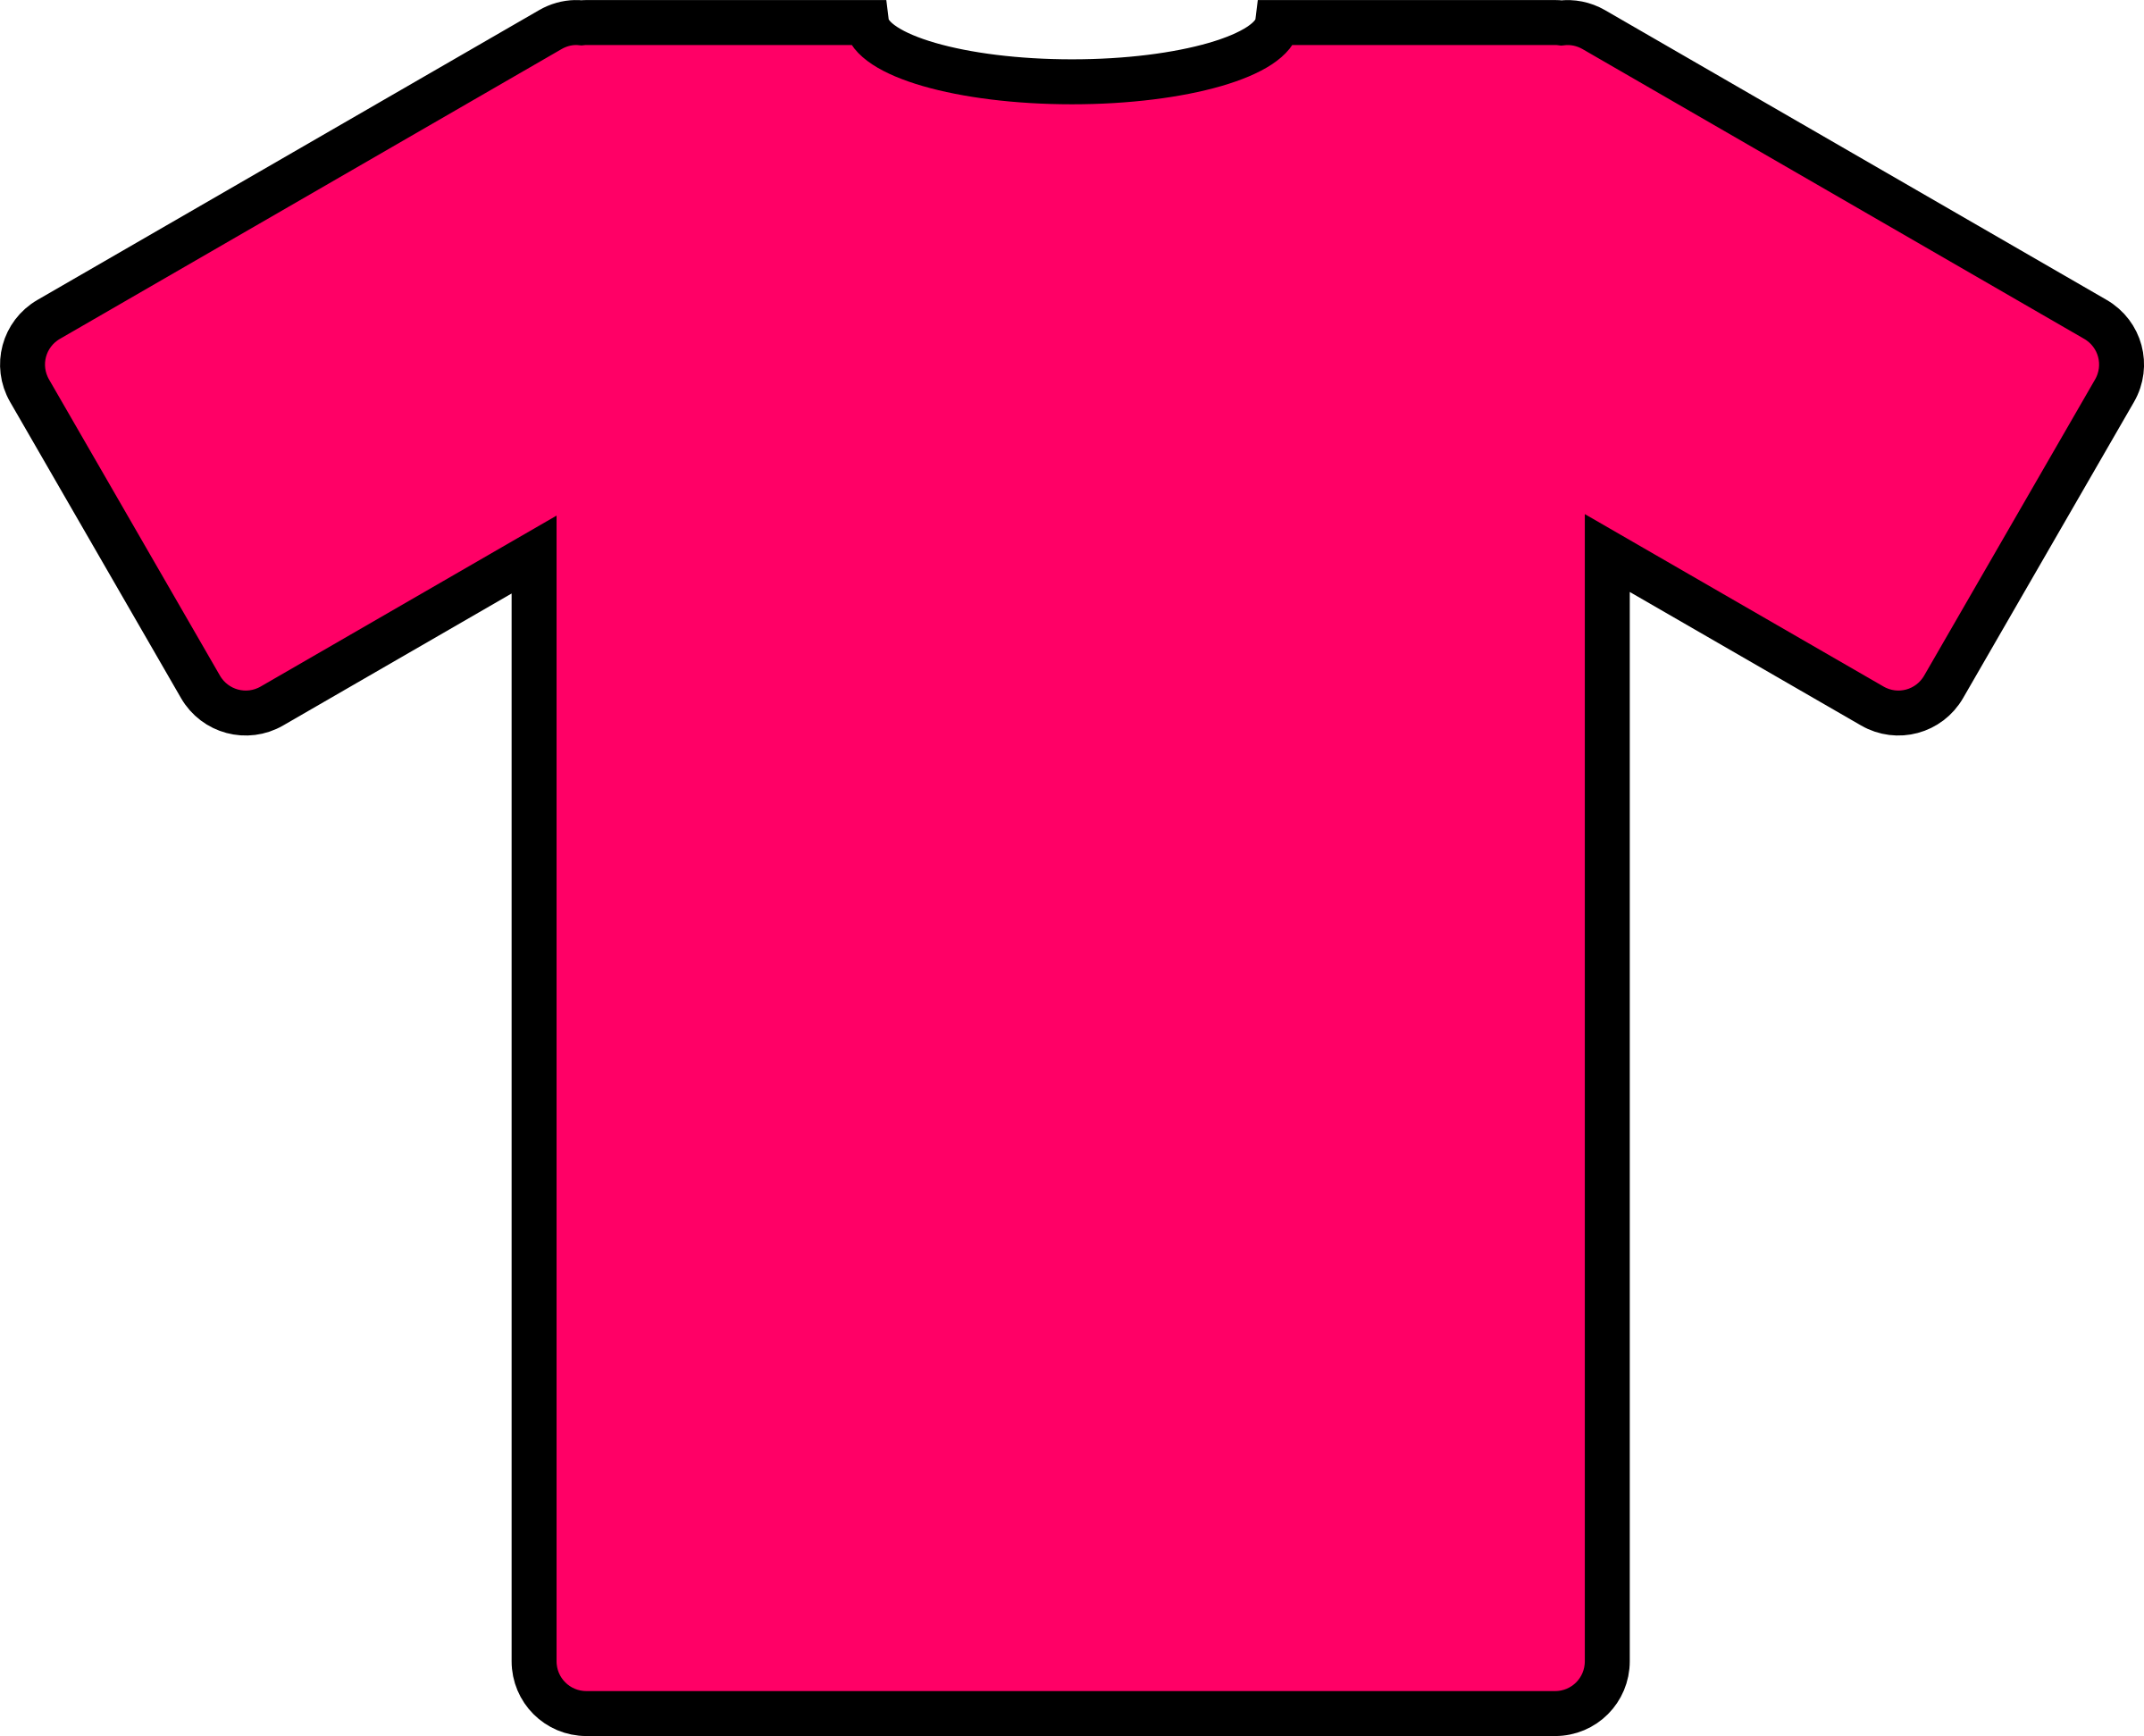 pink t-shirt by ryanlerch